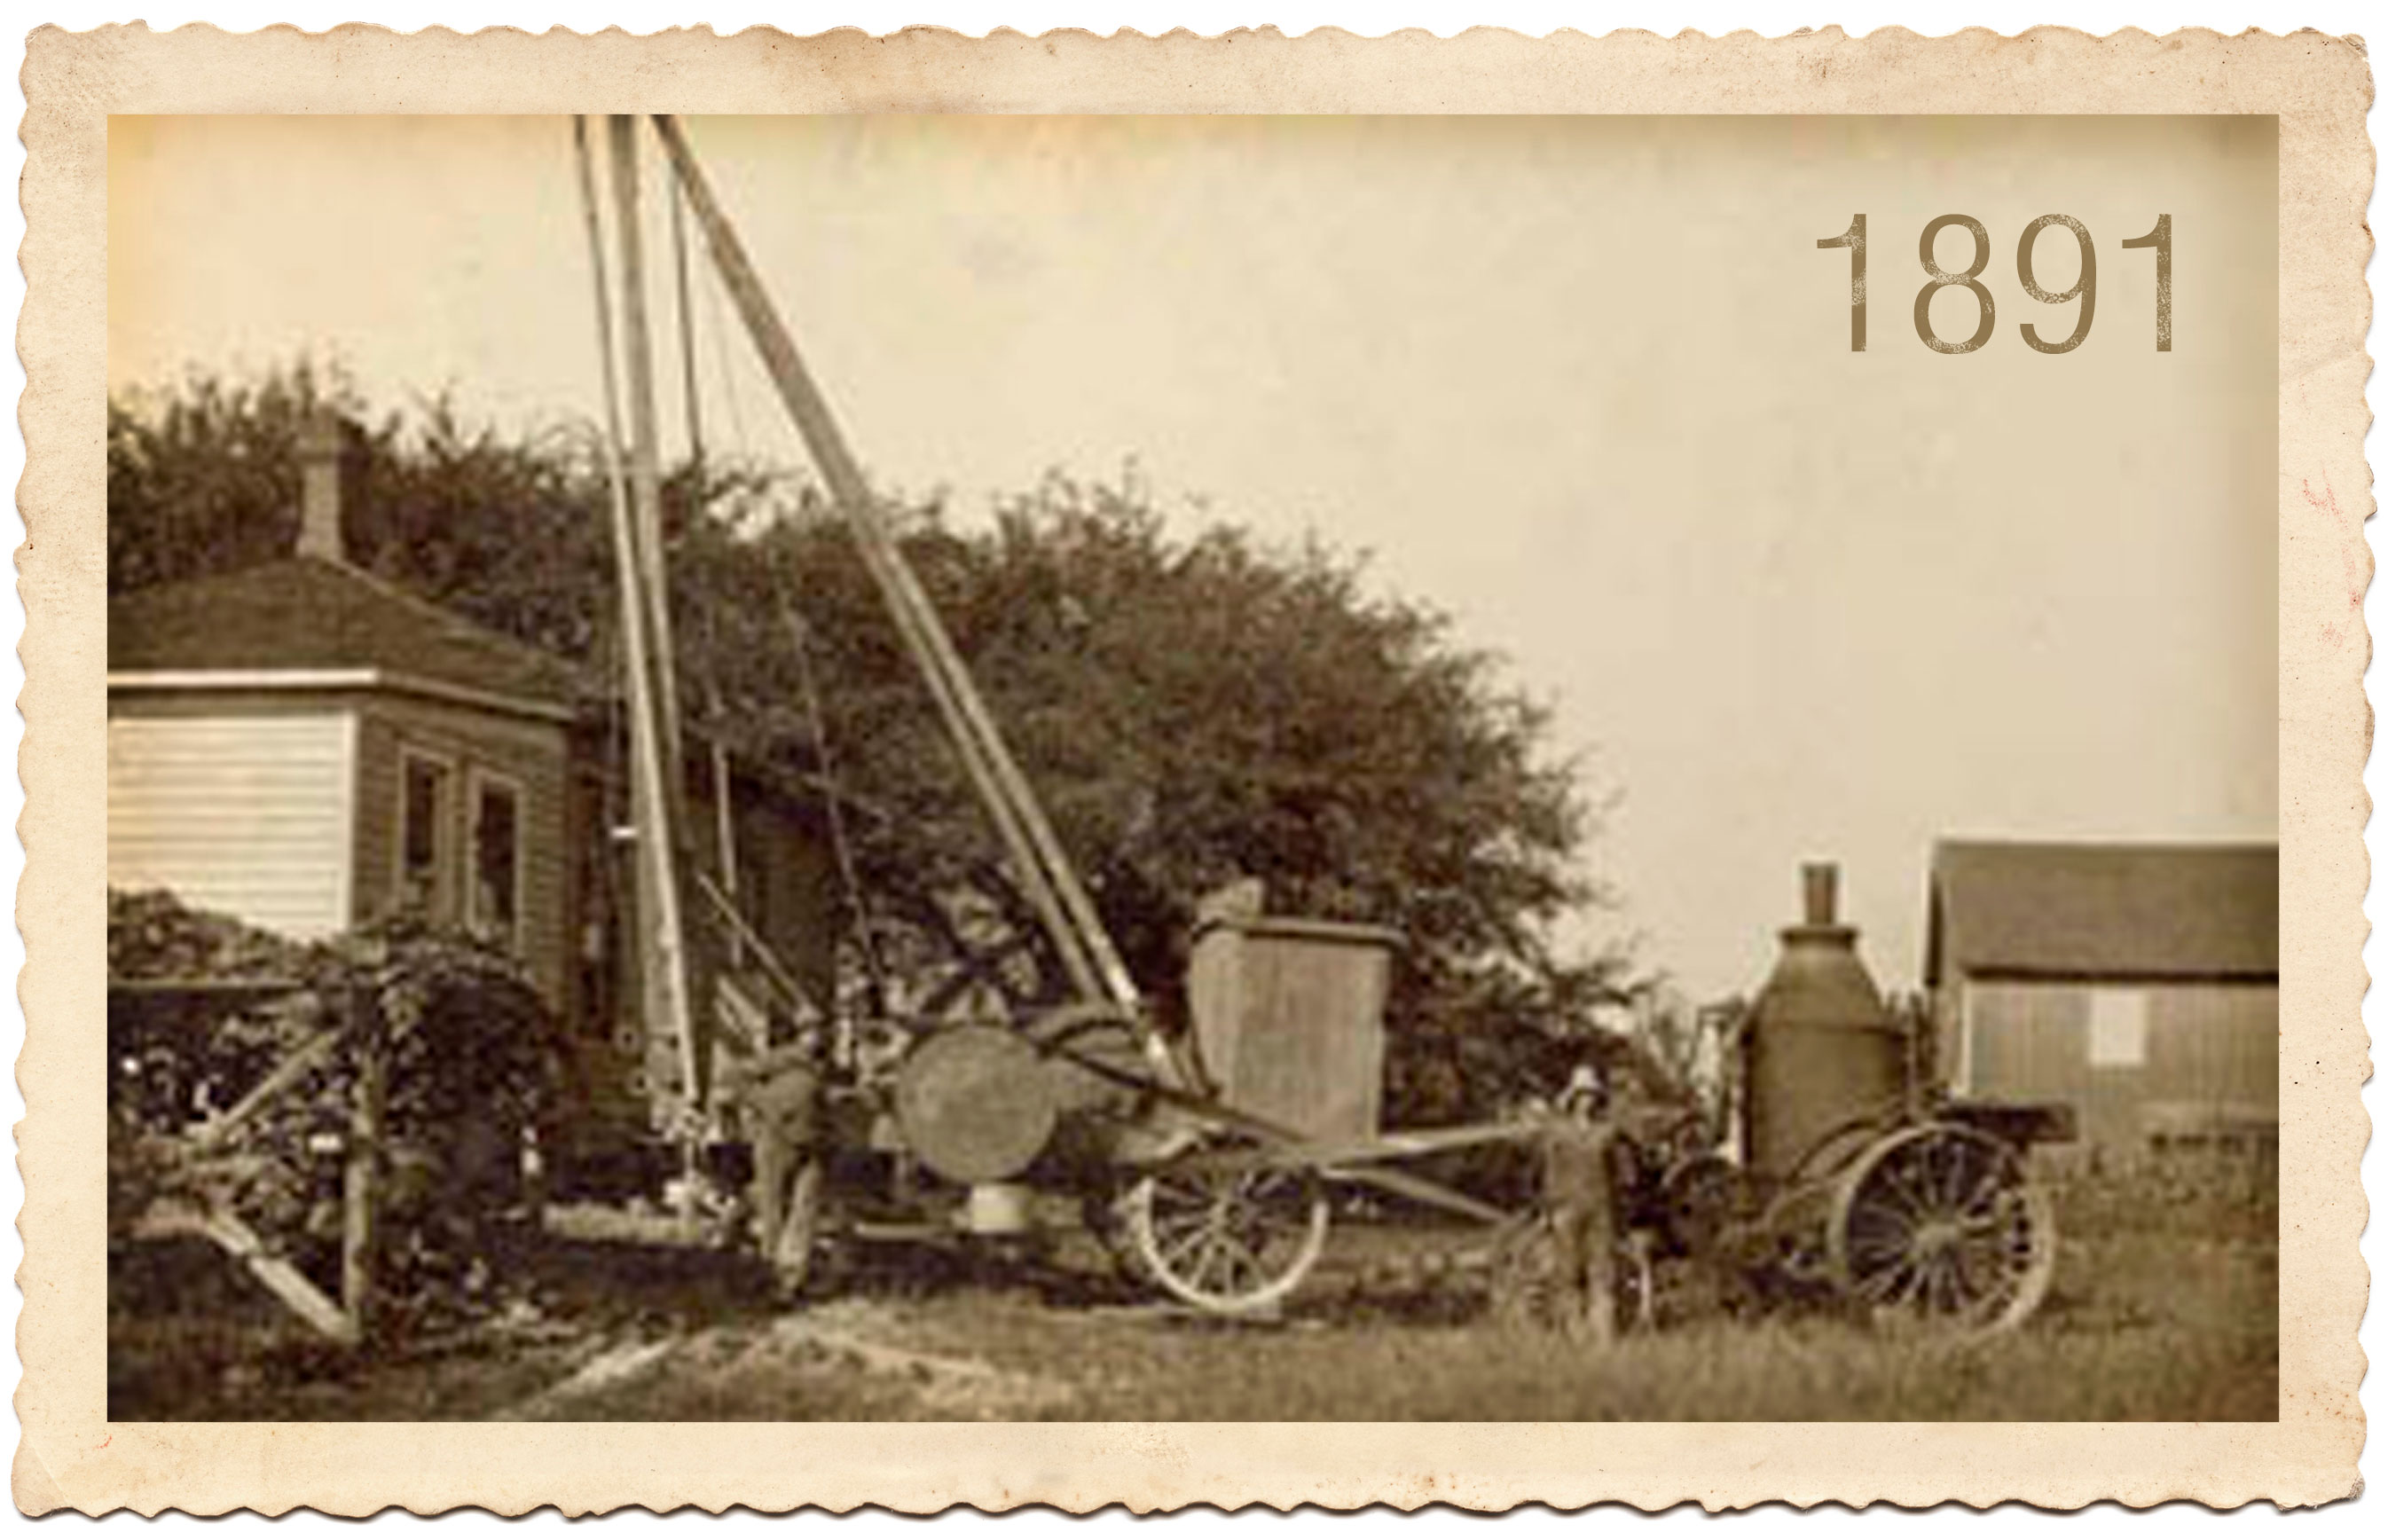 James Moody and Associates groundwater professionals since 1891 started with steam-driven drillings rigs in Crawford County, PA old sepia company photo stamp